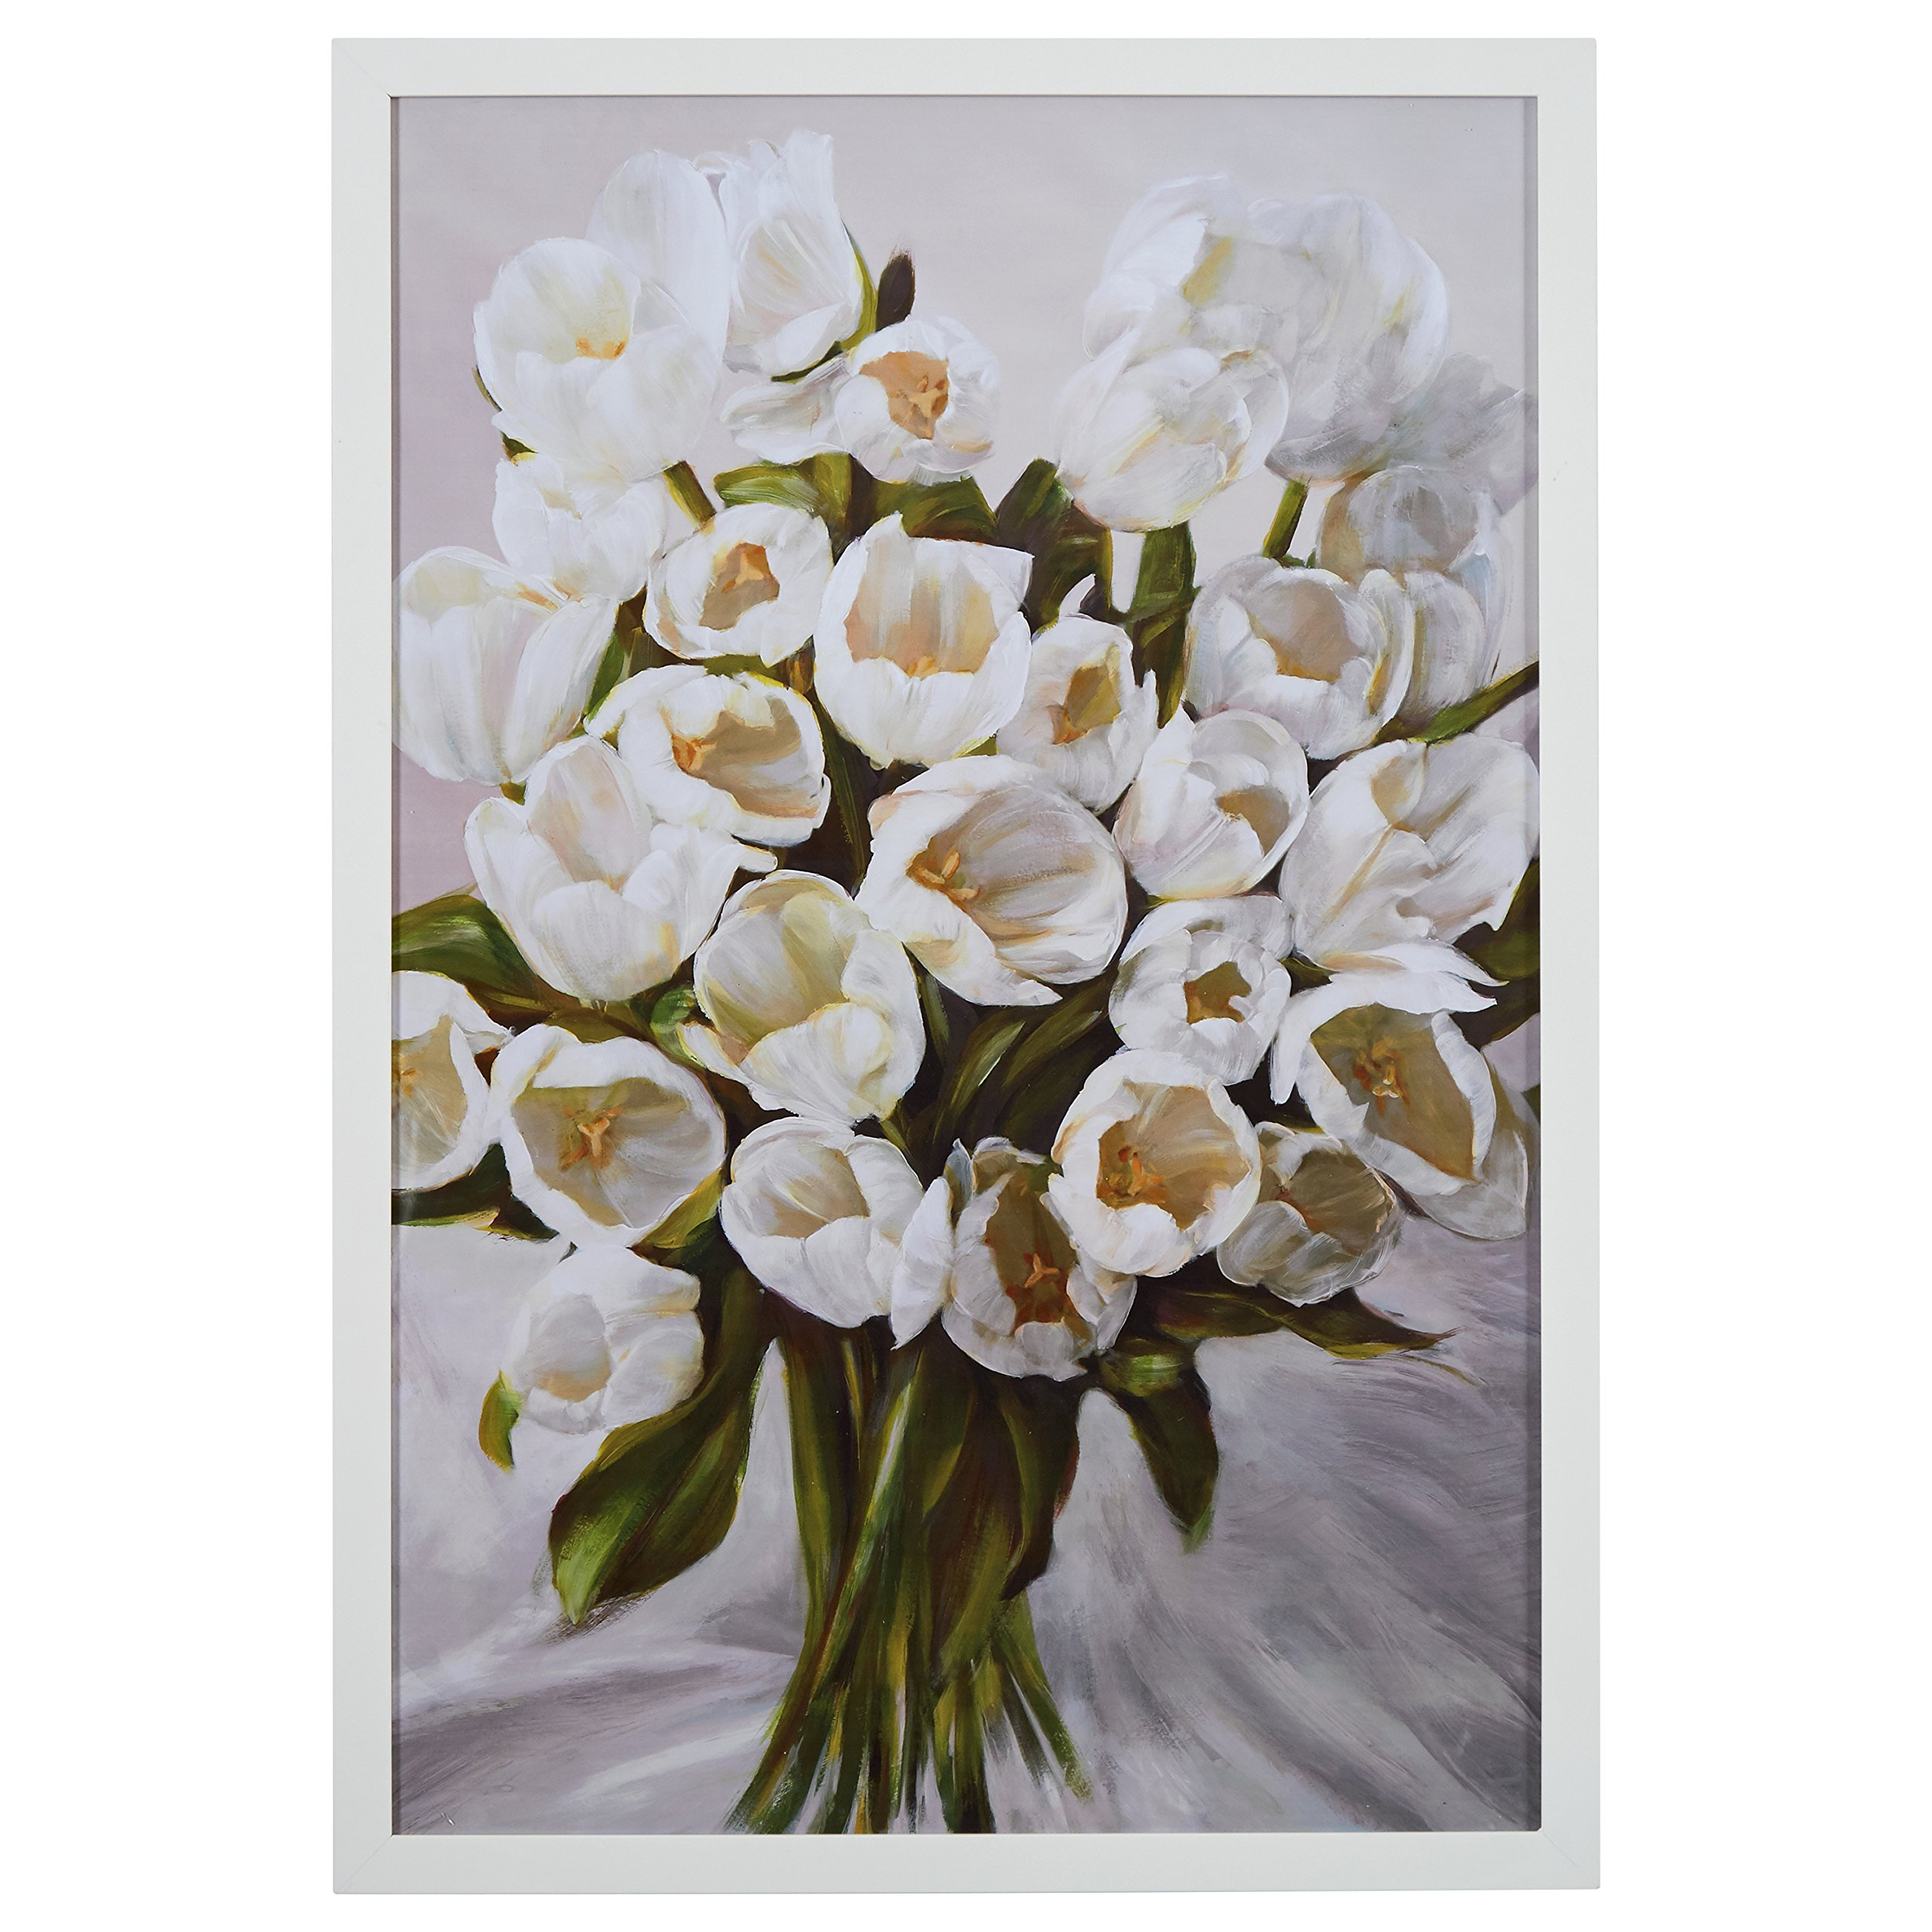 Contemporary White Tulip Bouquet Print in White Wood Frame, 26'' x 38''